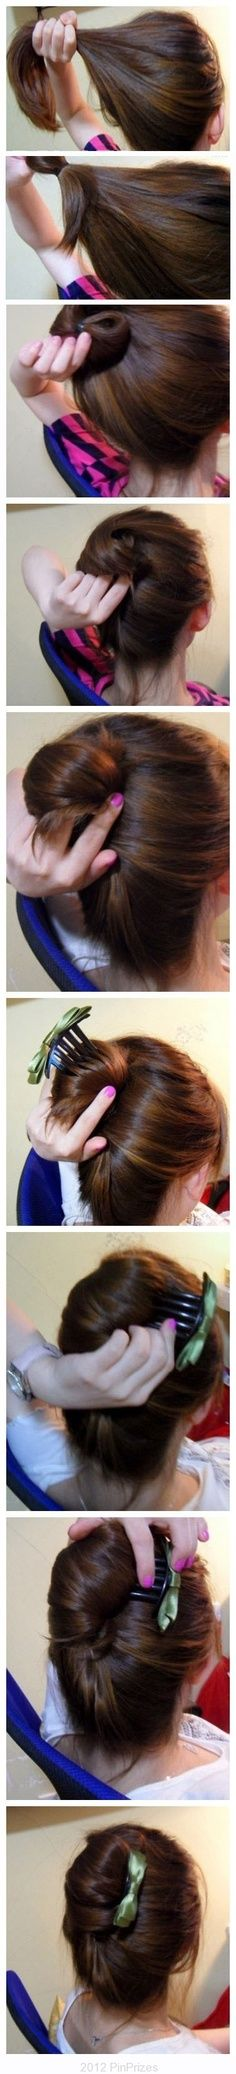 looking for a quick new hairstyle instead of the same ol' messy top knot? This is so cute!